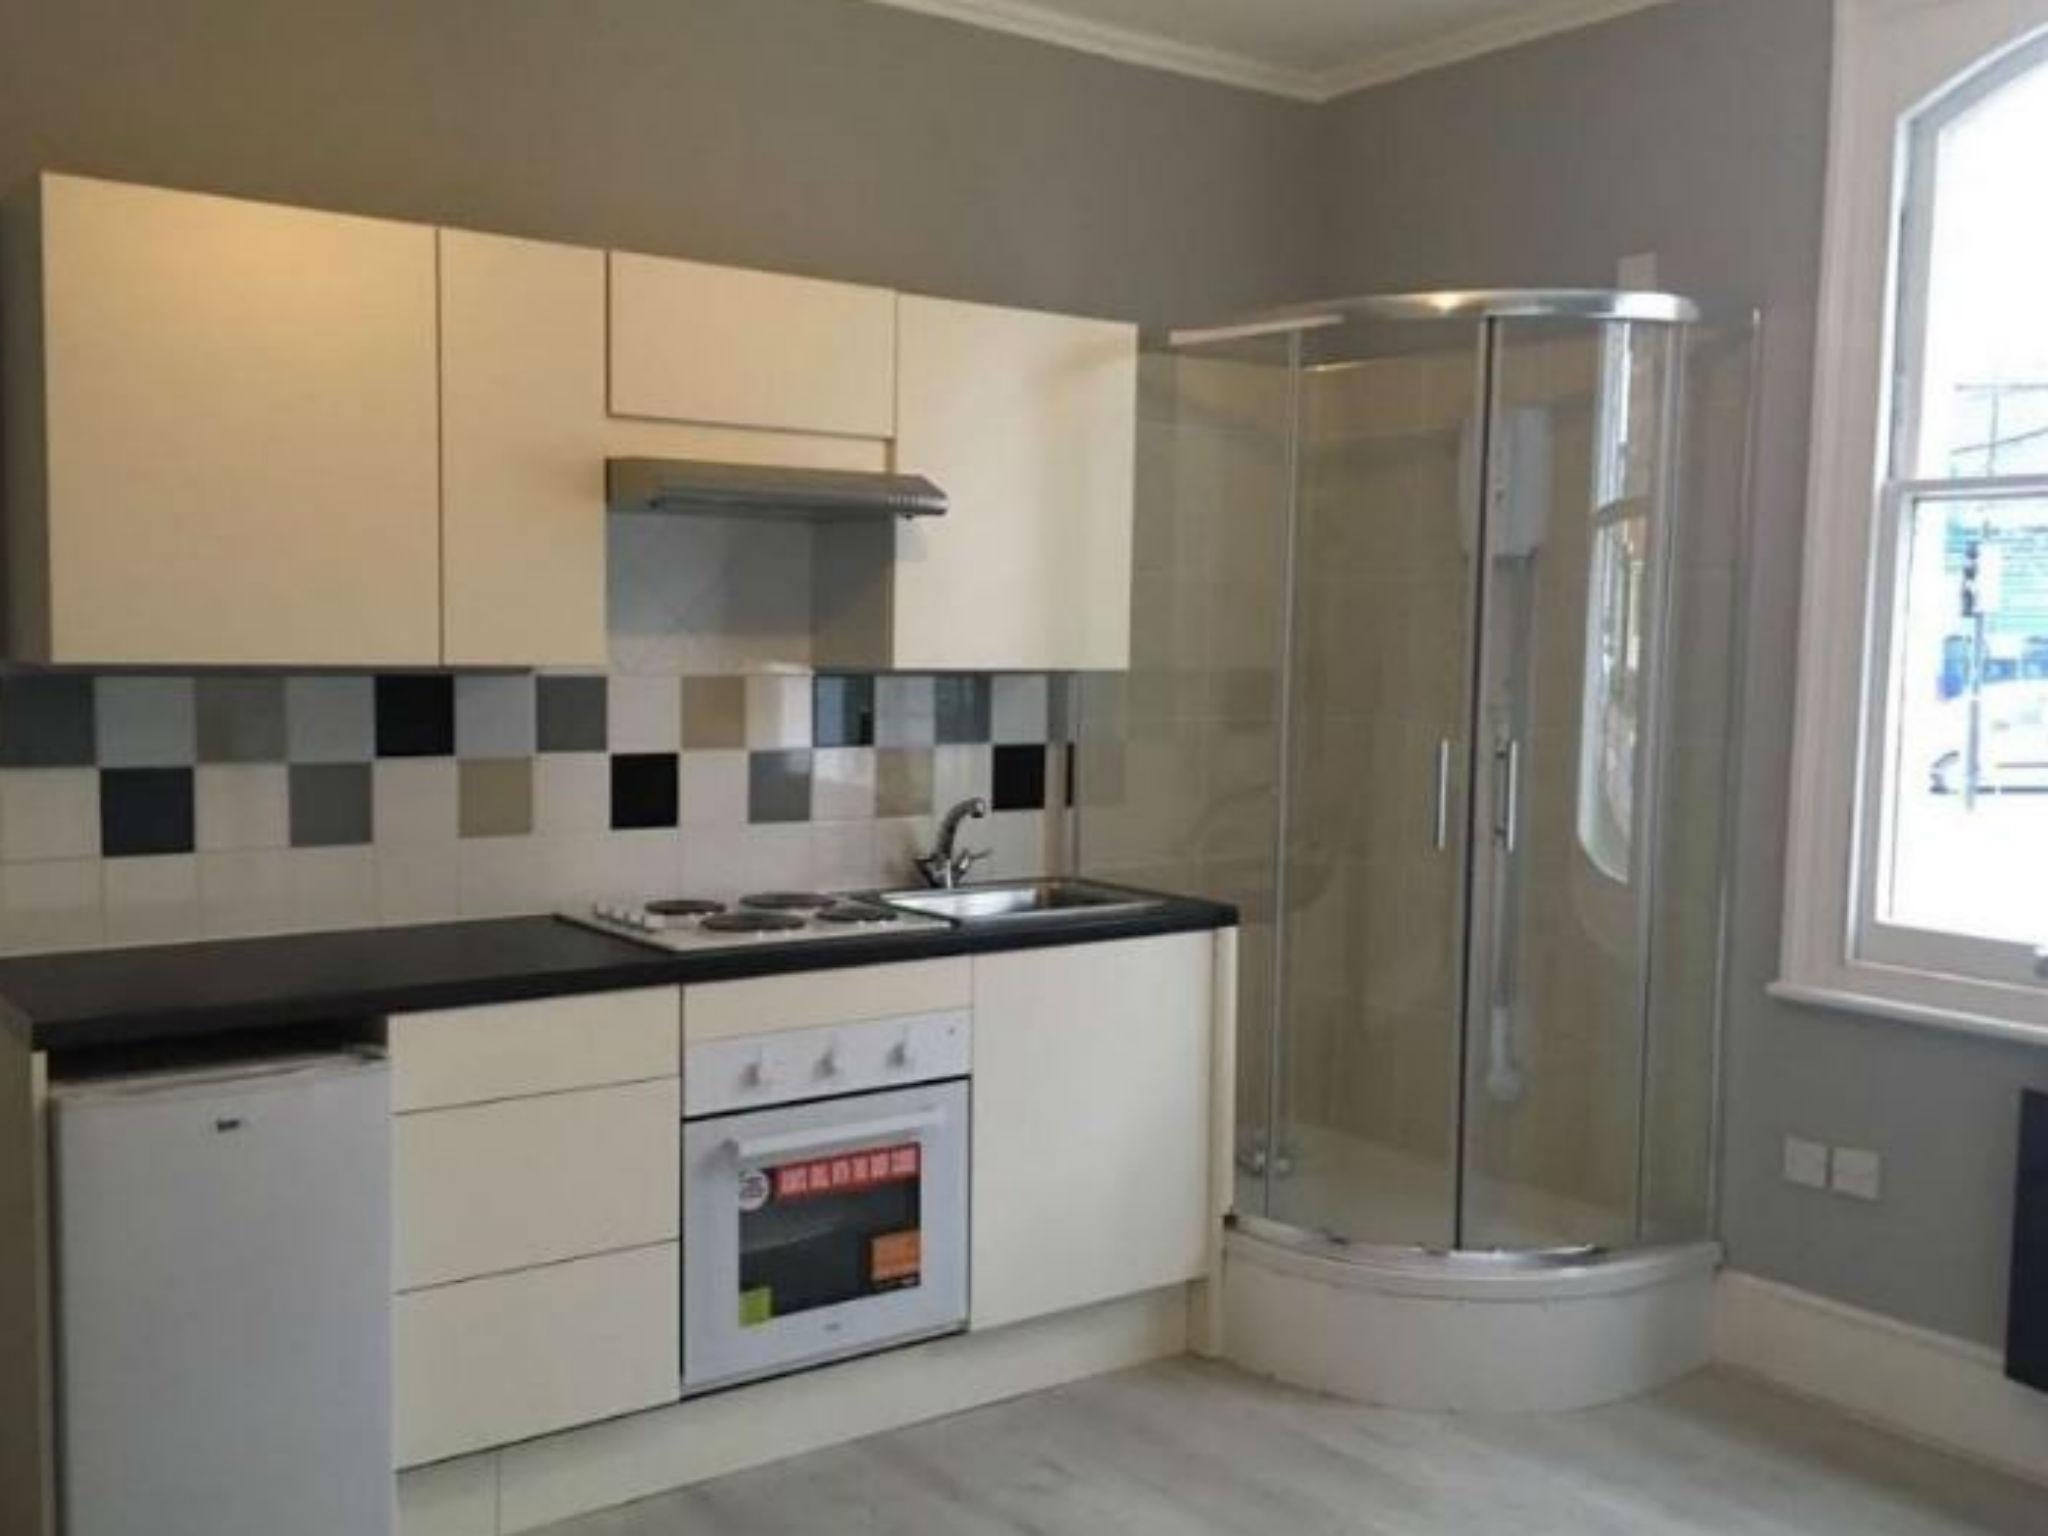 London Flat With Shower In The Kitchen Renting Out At 163 850